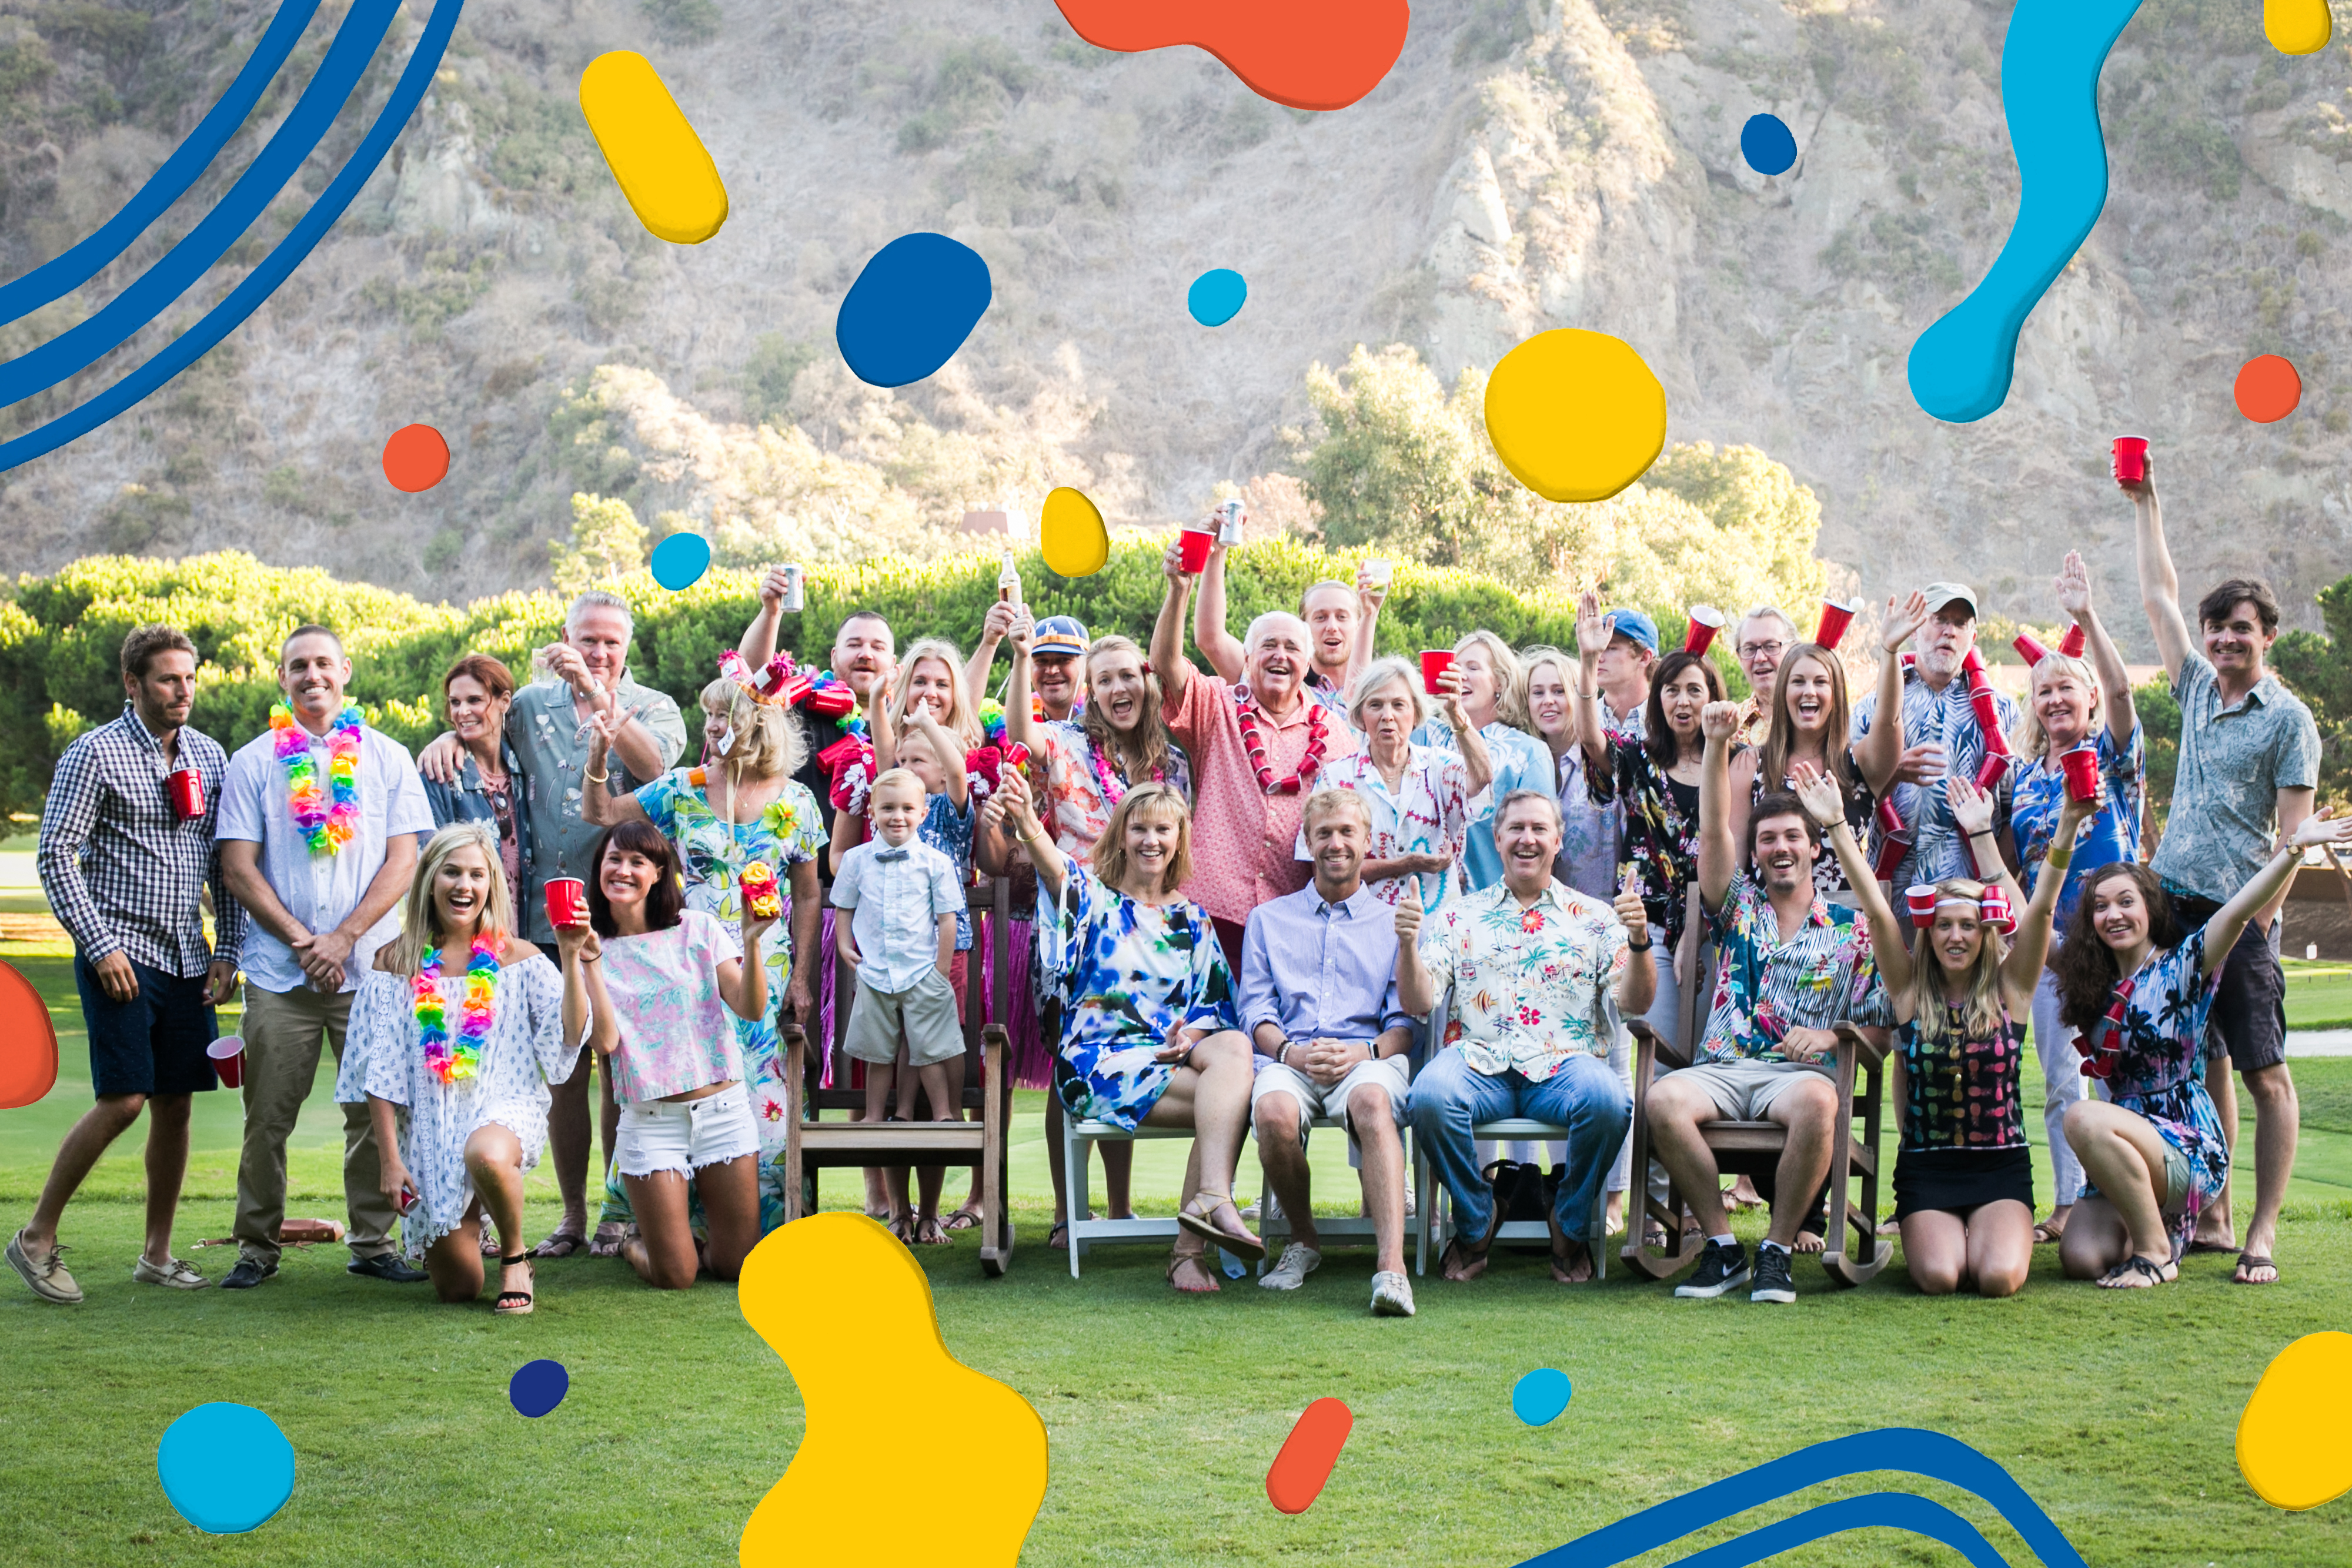 In 2011, Big O married Bombie and the family reunion attendees almost doubled, making for even more merriment.